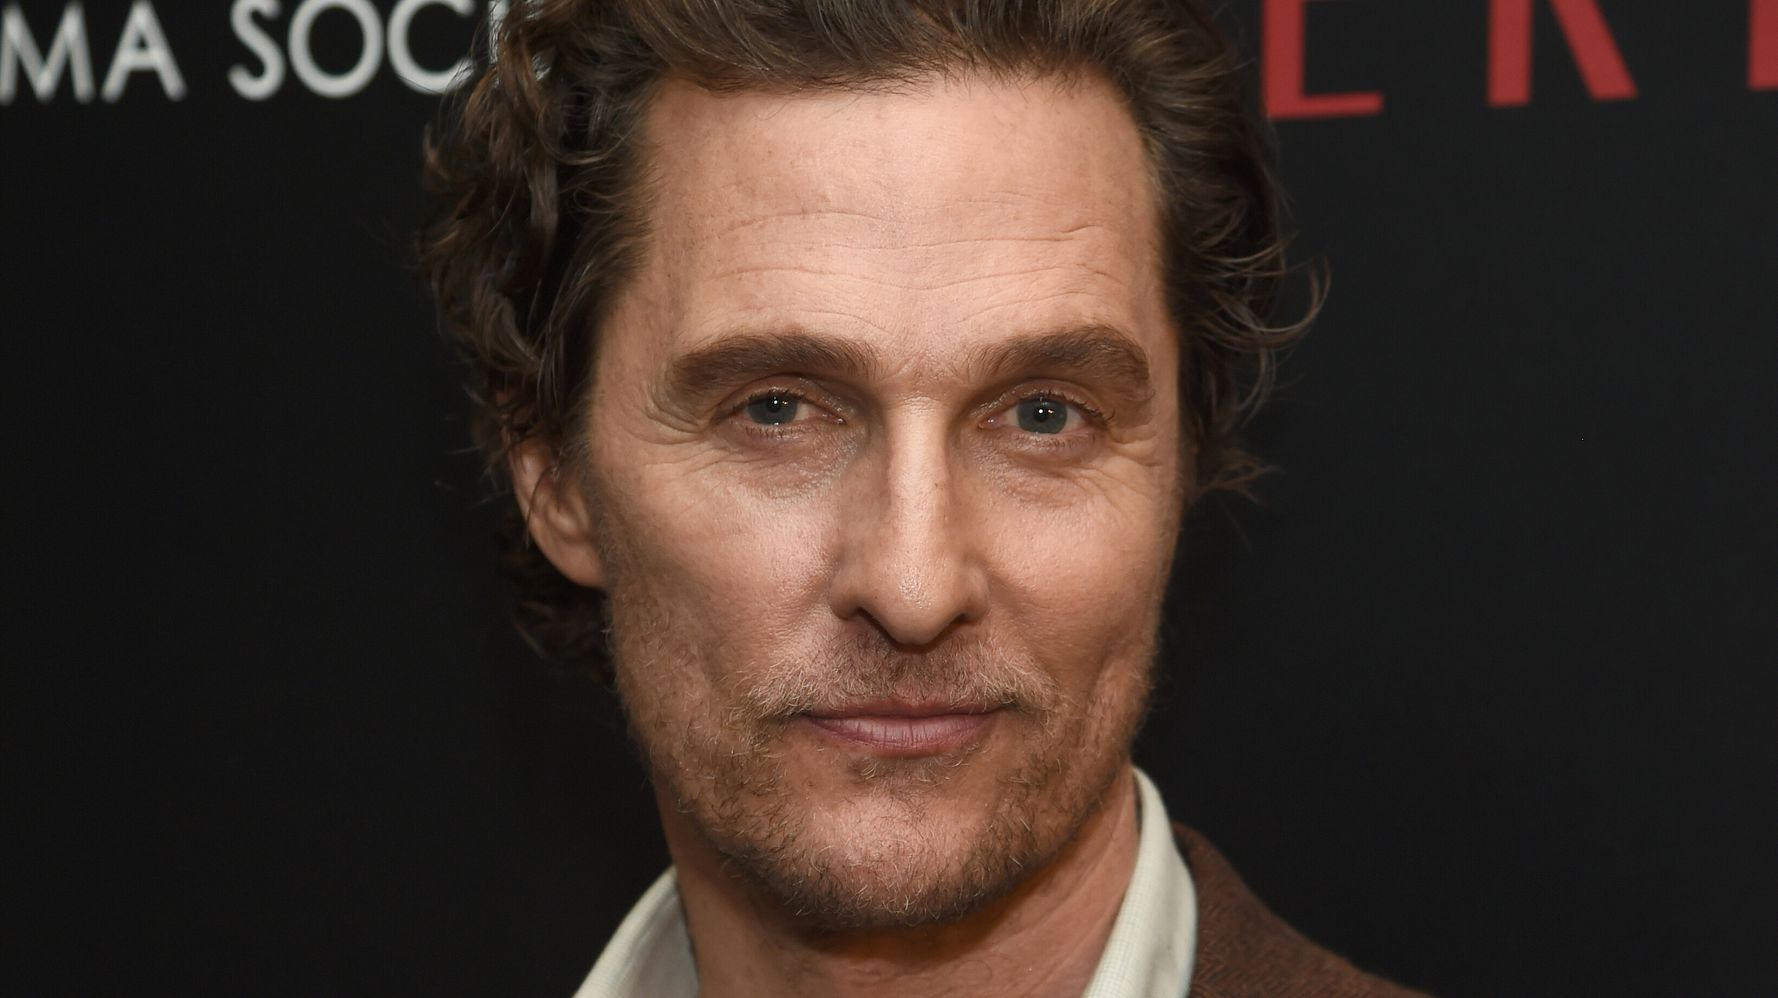 Matthew McConaughey Reveals He Wanted To Play Hulk But Got Shut Down